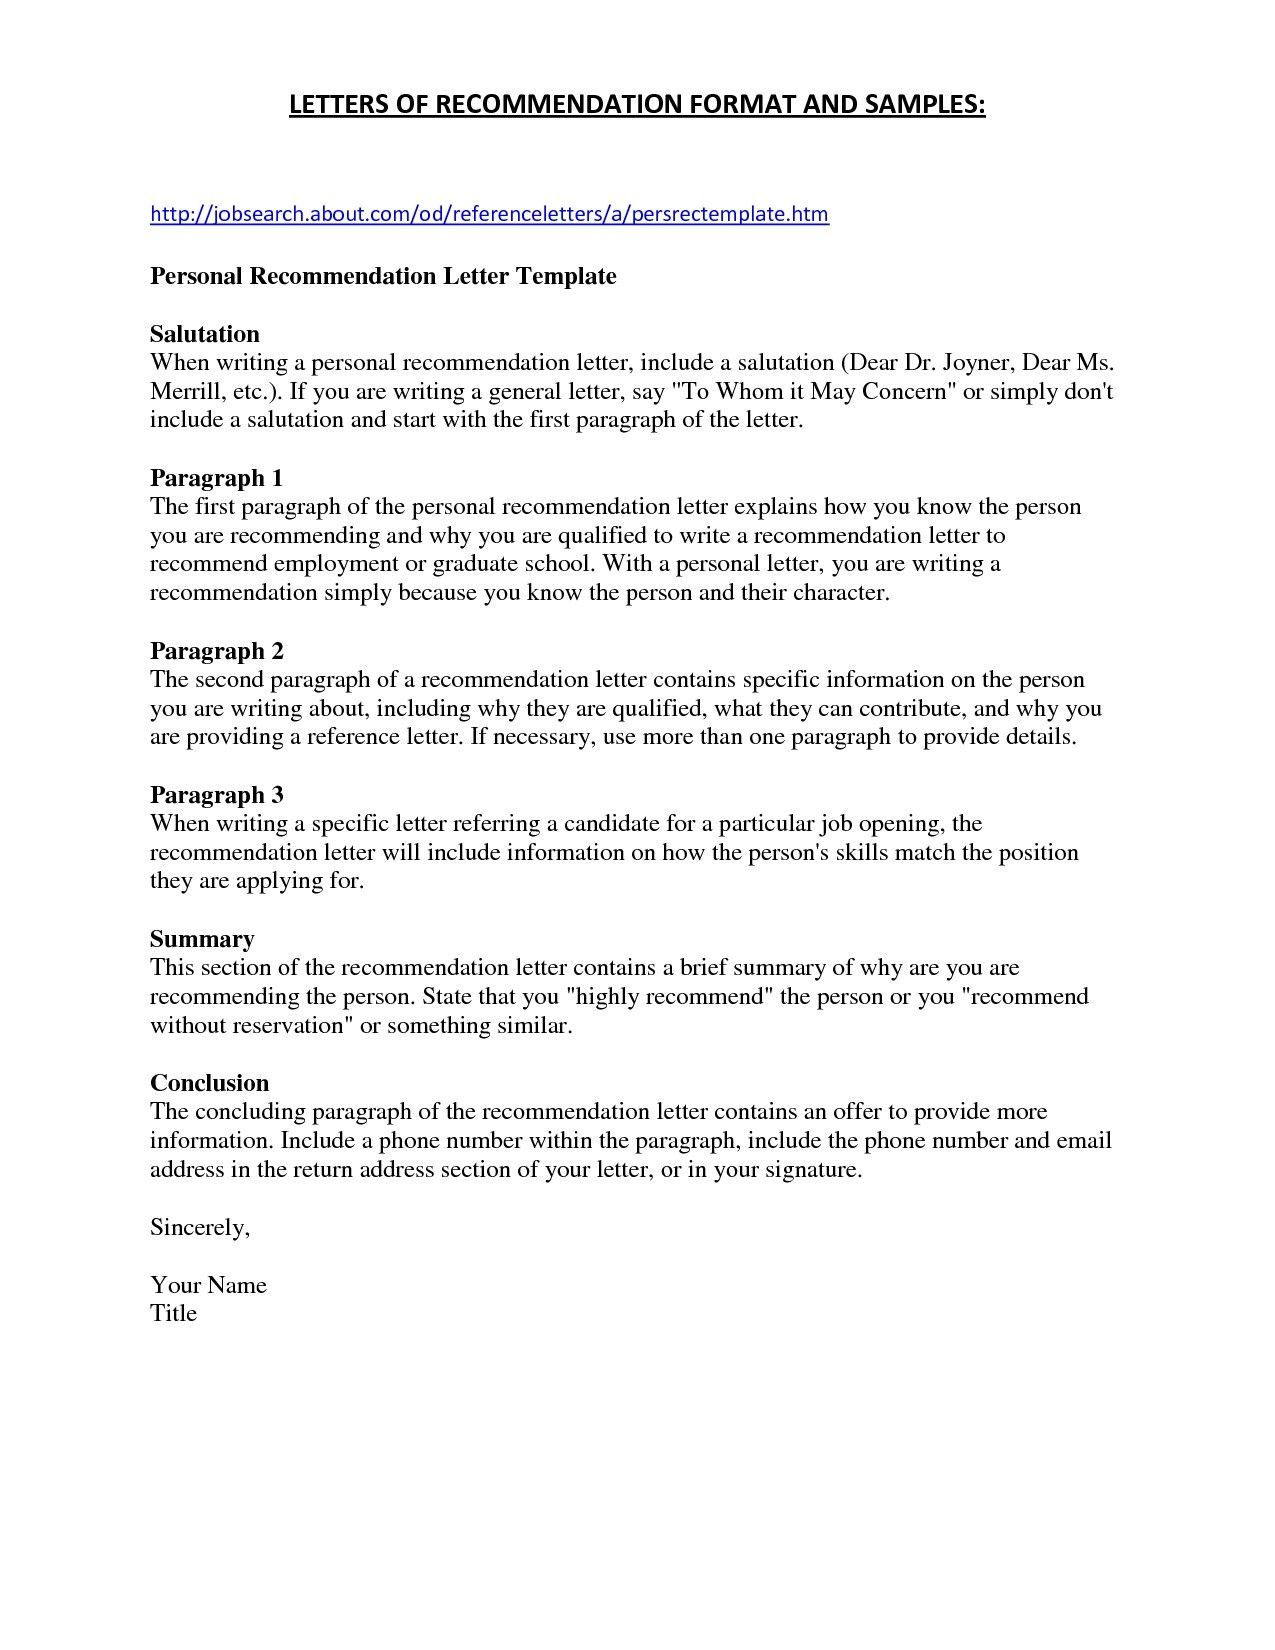 Read This Before You Write Letter Of Recommendation Template